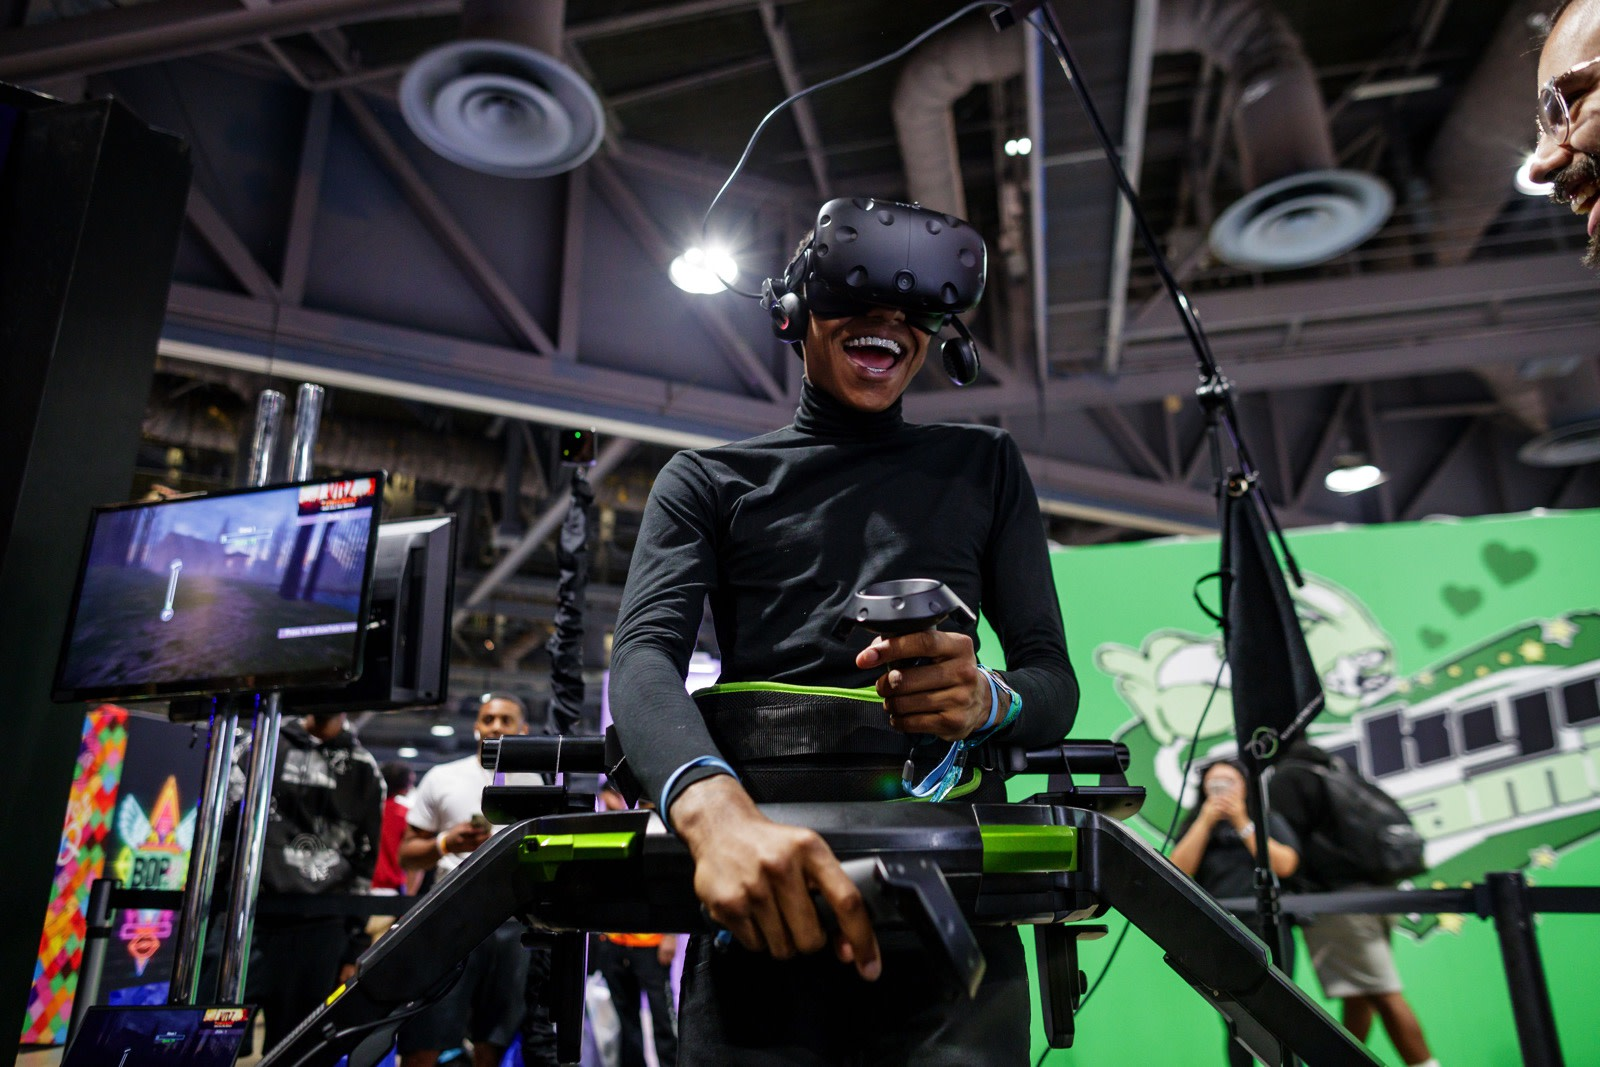 Mtn Dew Amp Game Fuel Brought Out-of-This-World Fun to ComplexCon